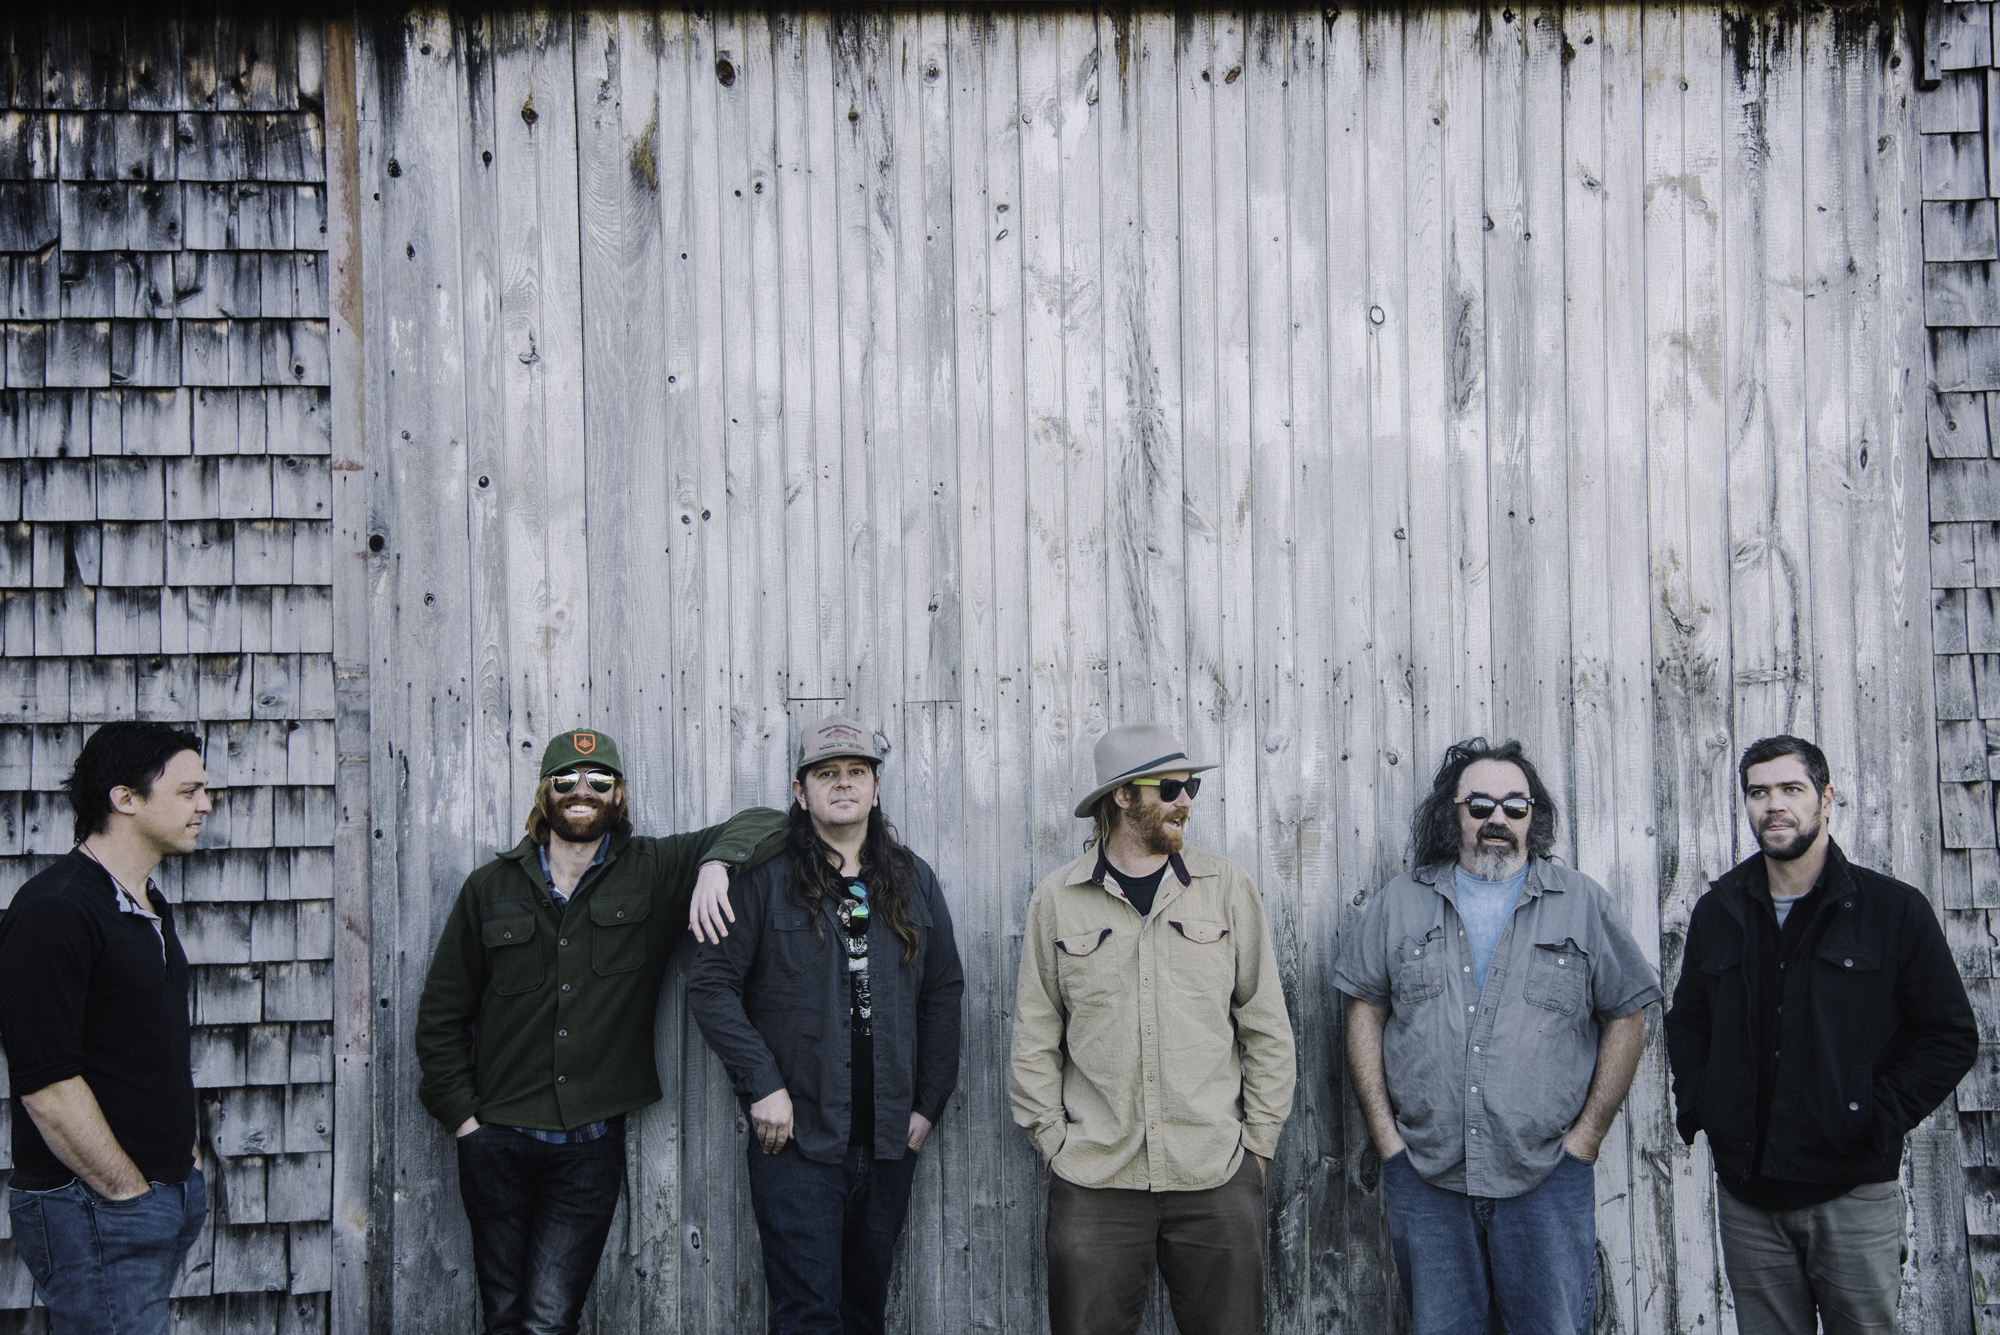 LISTEN: The Mallett Brothers Band, 'Too Much Trouble'